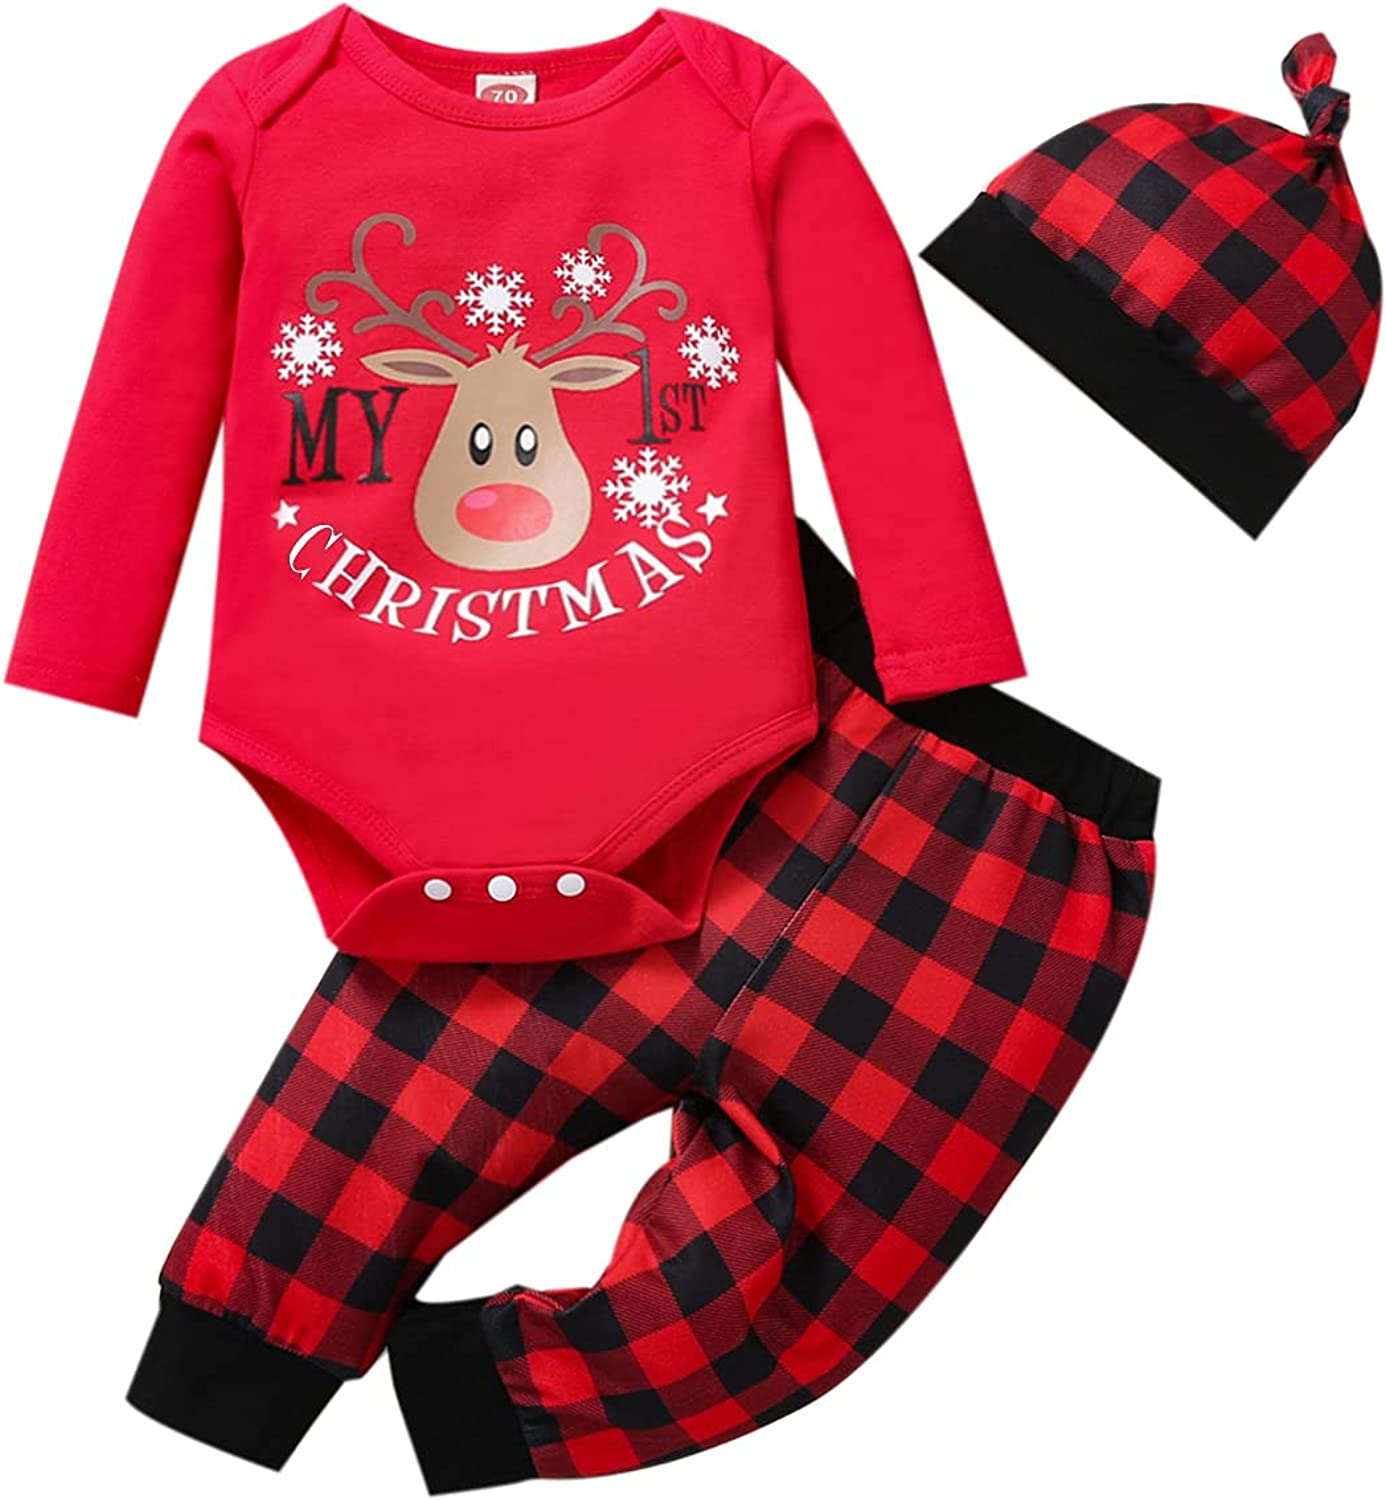 My 1st Christmas Newborn Infant Baby Boy Outfits Clothes Set